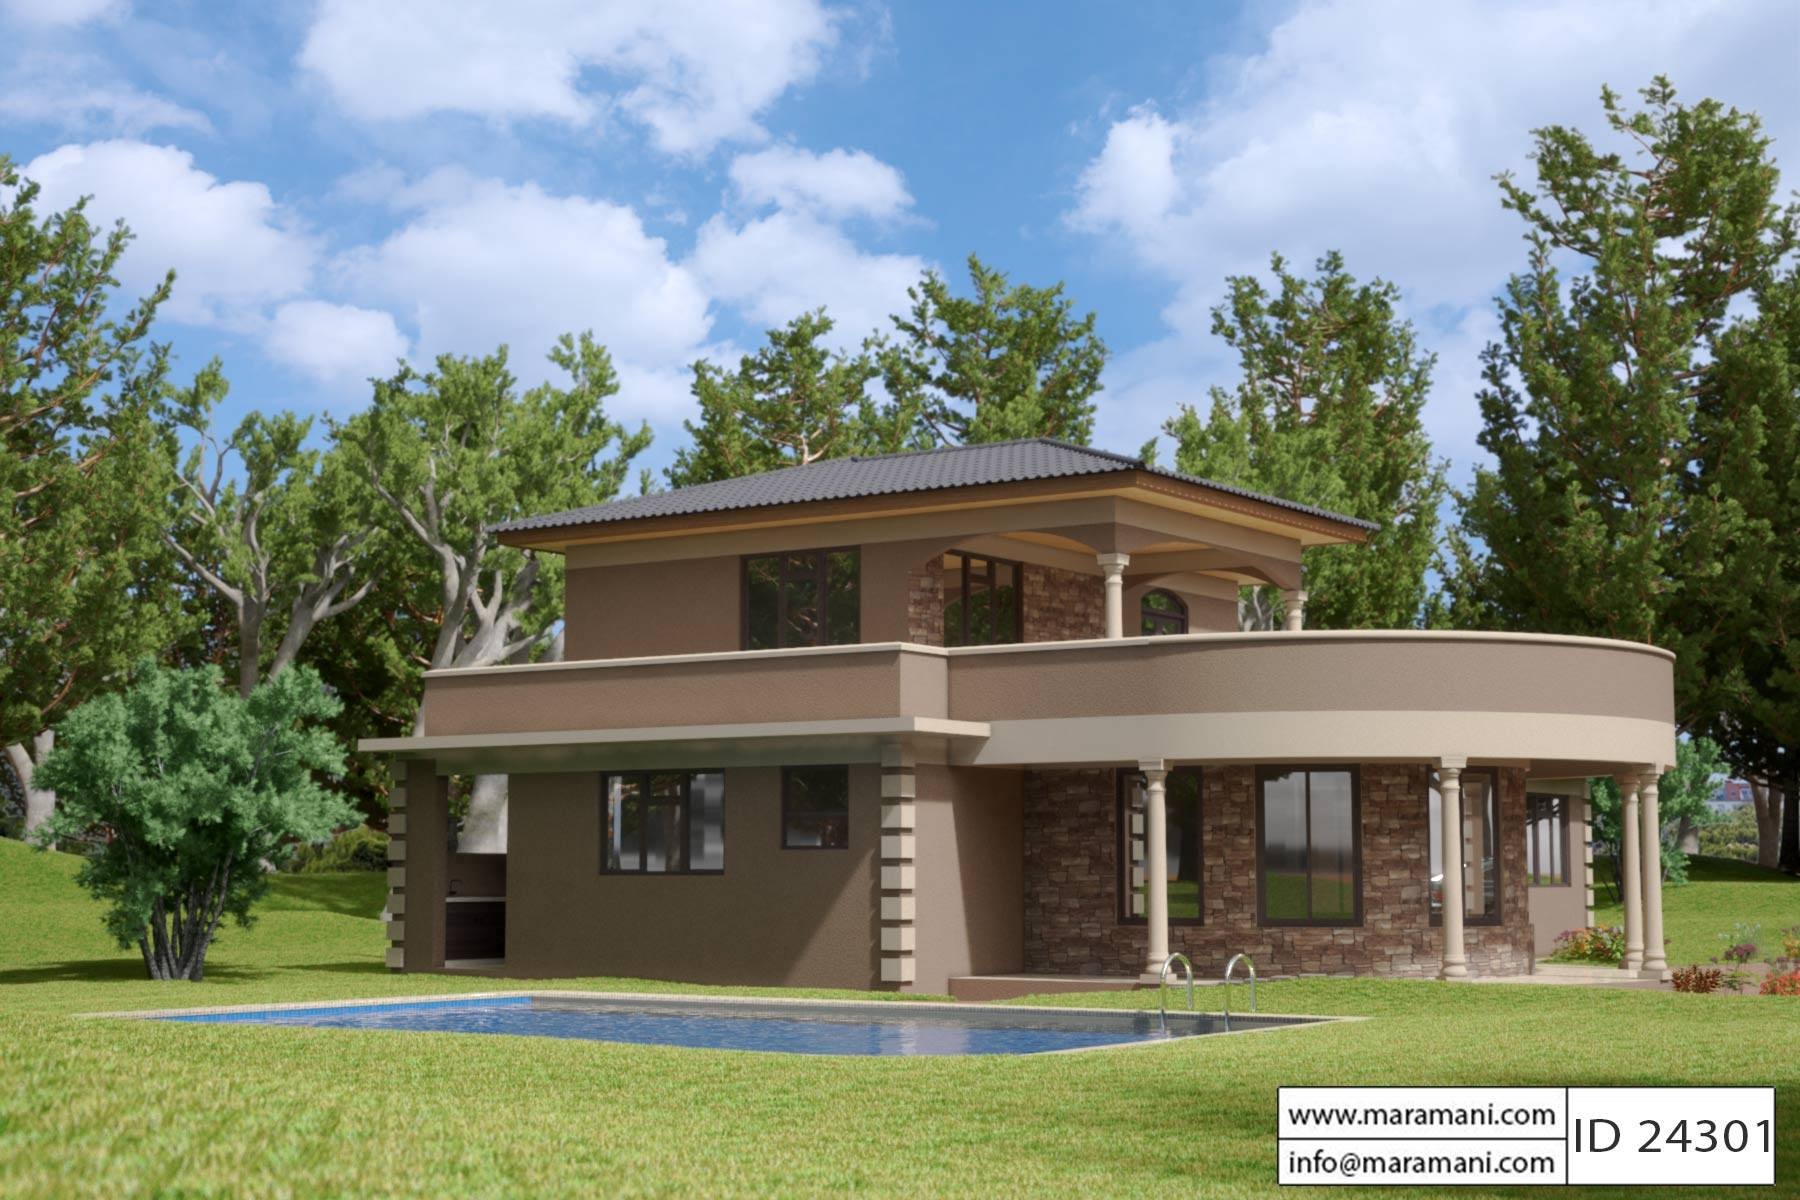 Contemporary 4 Bedroom House Plan ID